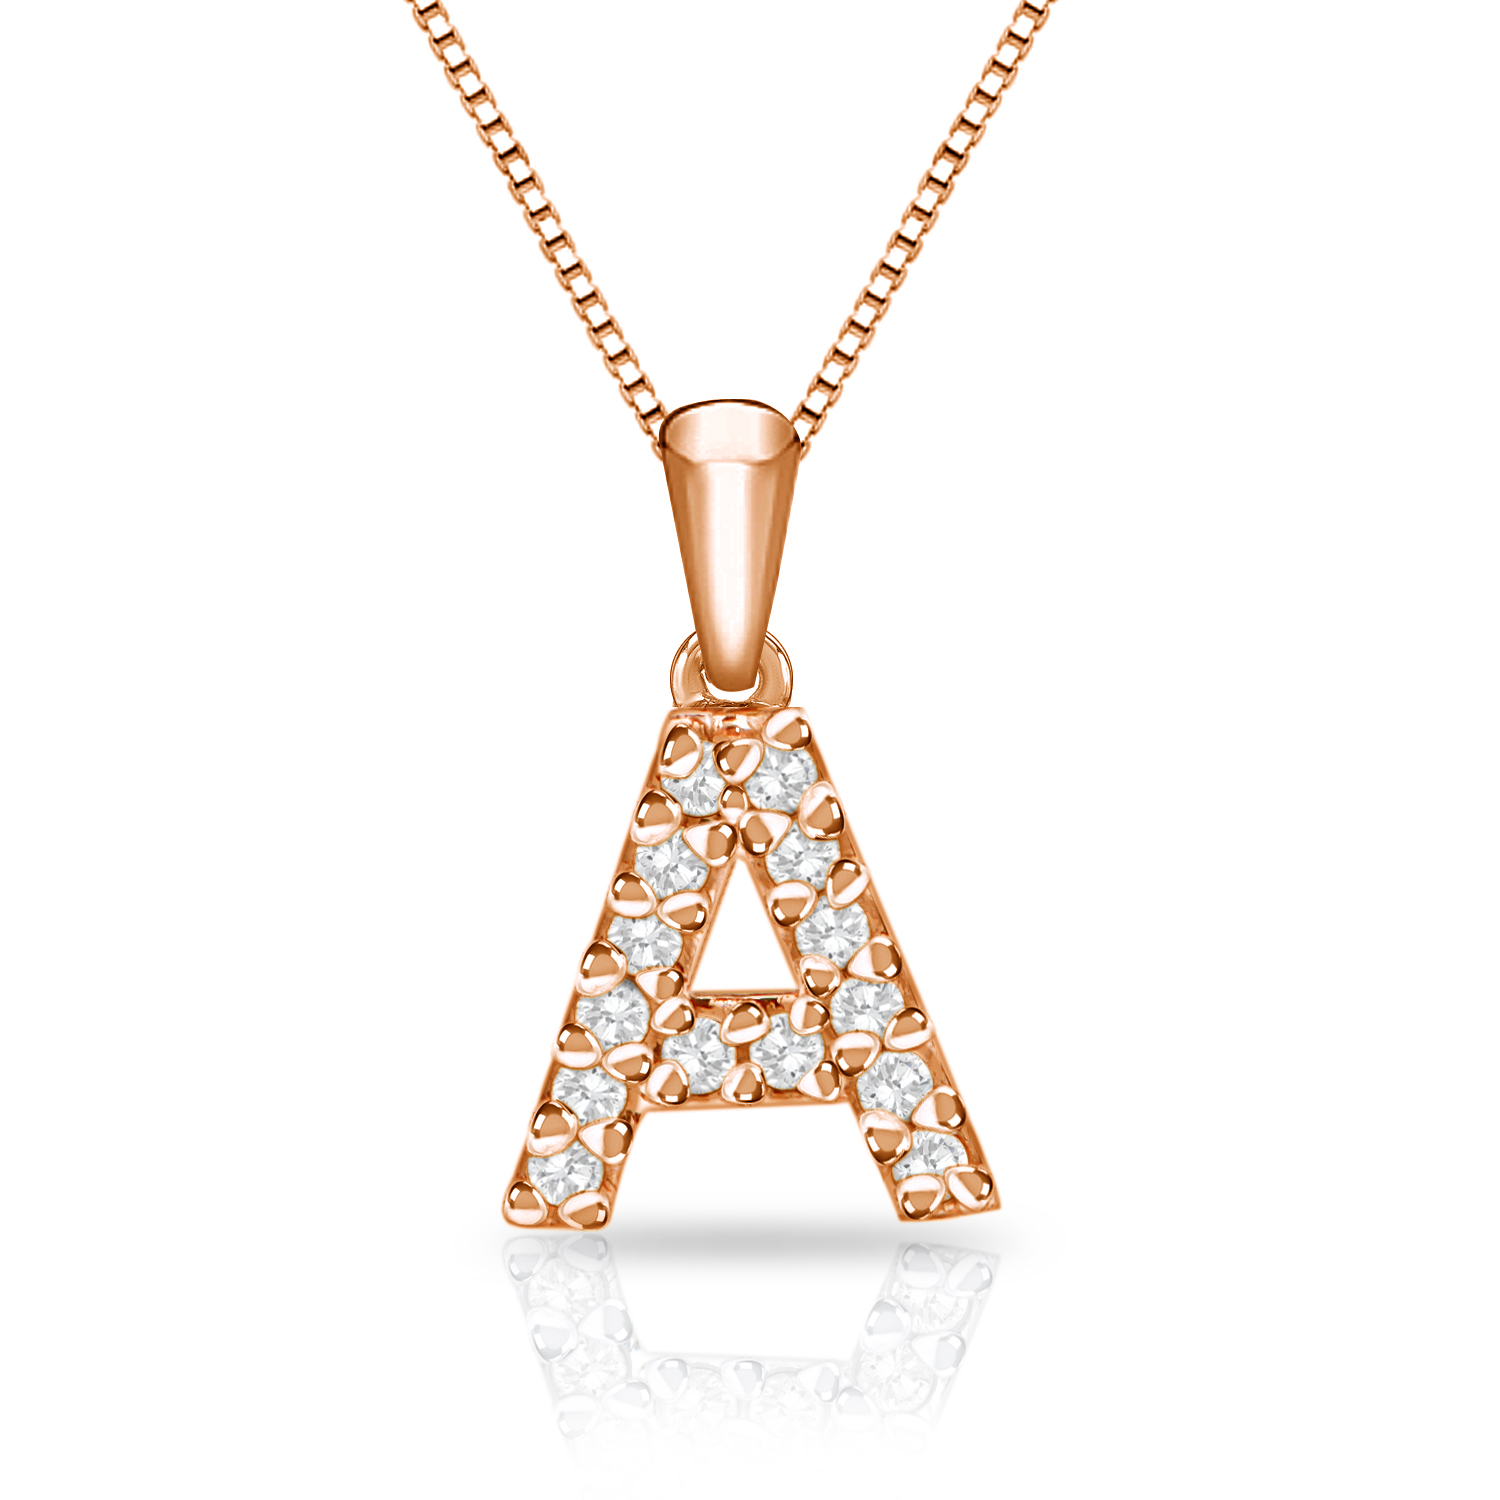 Certified Diamond Letter A Initial Pendant in 14k Rose Gold (1/10 cttw) 18-inch Box Chain